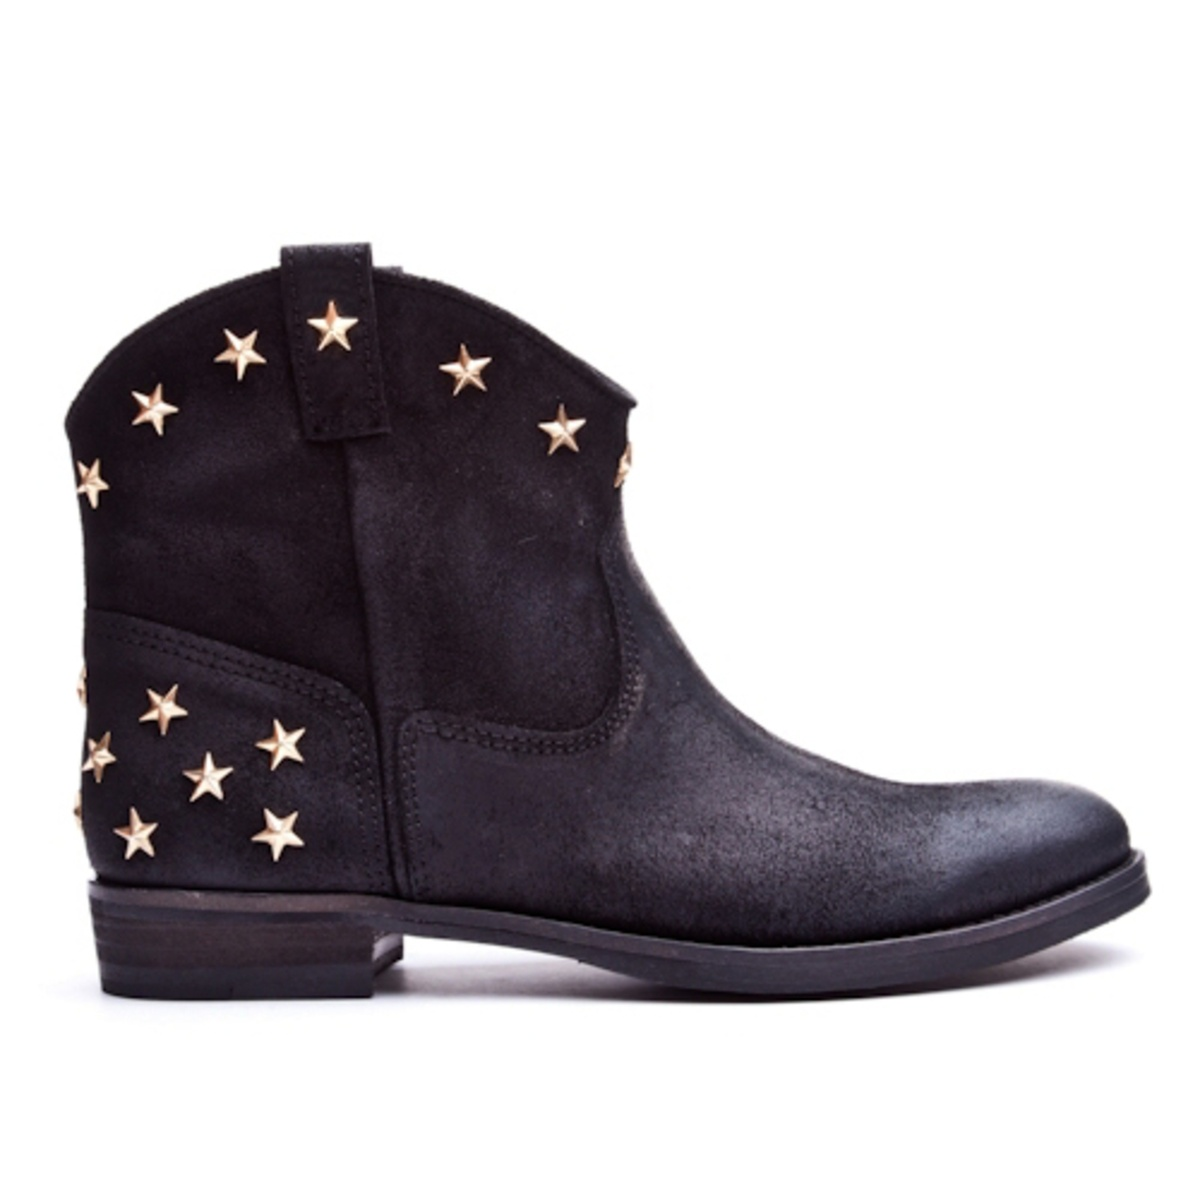 IT HEIDI GOLD STARS BOOTS | GIRISSIMA.COM - Collectible fashion to love and to last